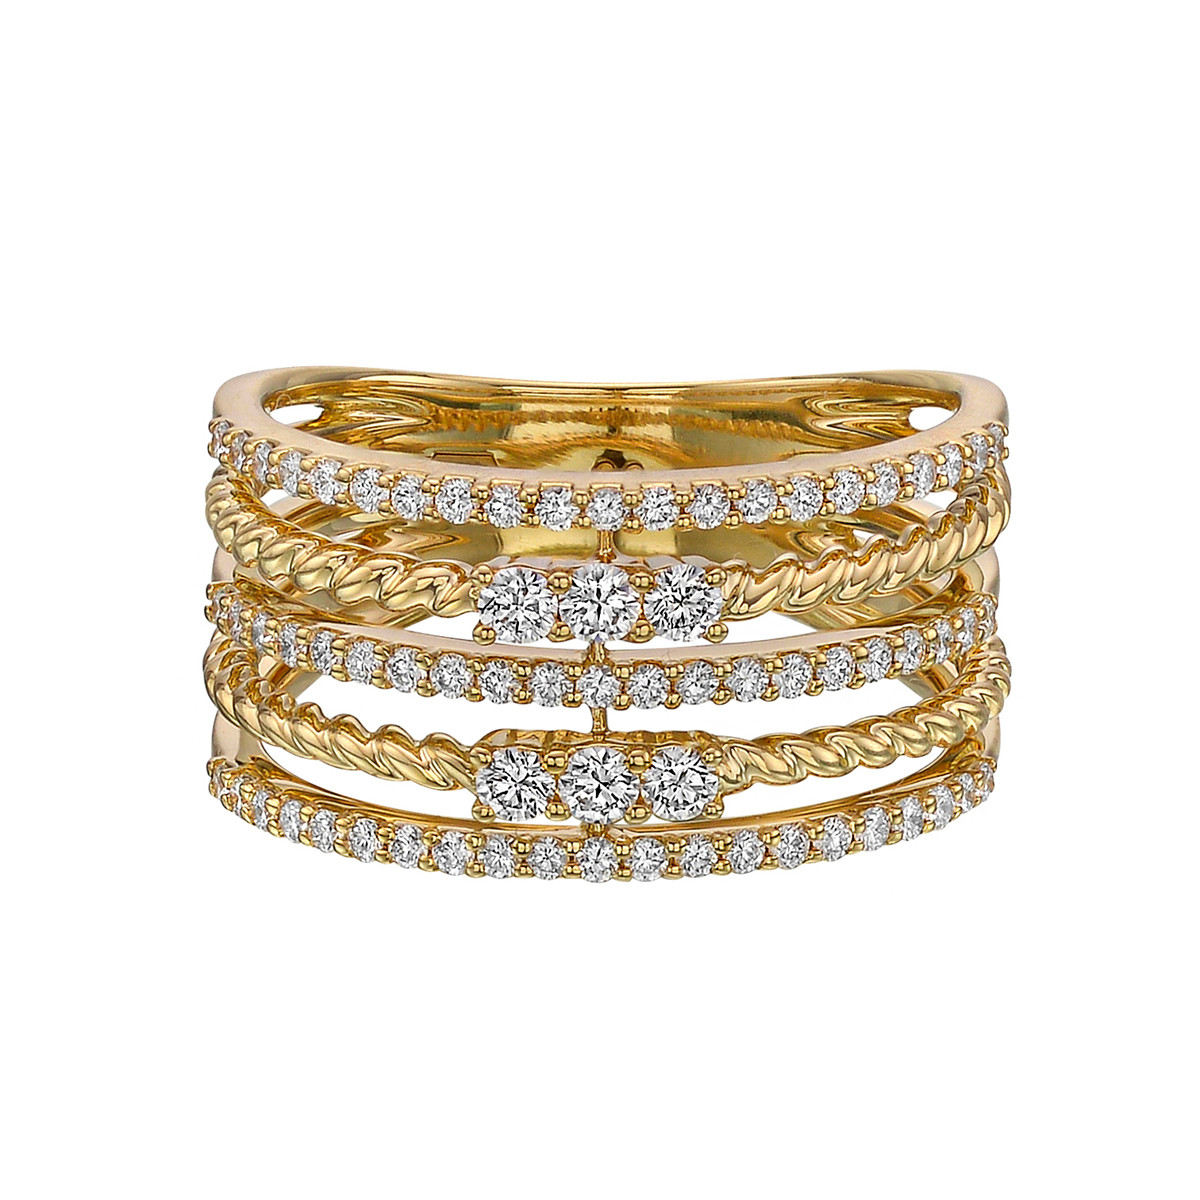 18k Yellow Gold & Diamond 5-Row Ring